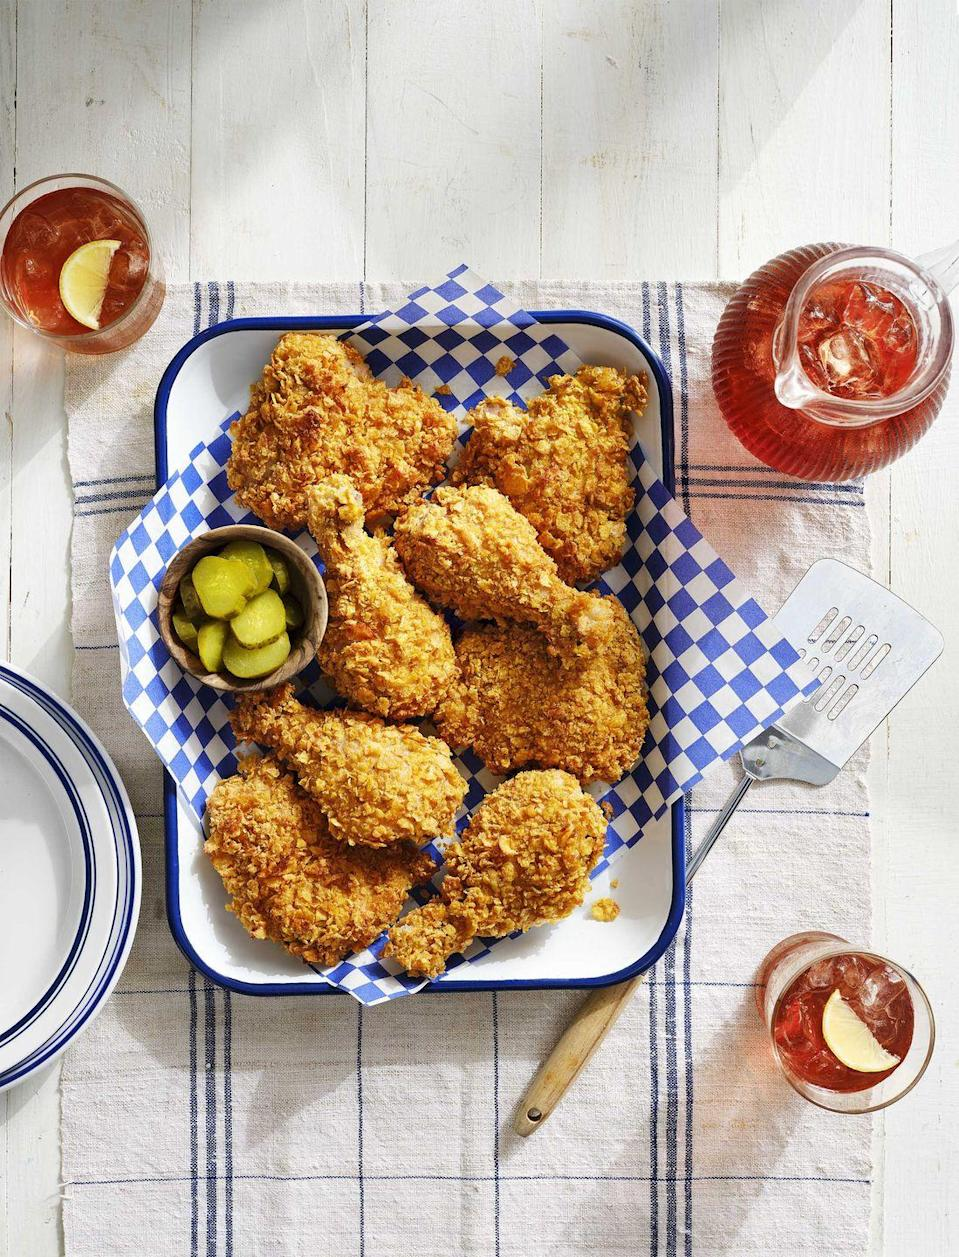 """<p>This almost-like-fried chicken is baked so you won't spend hours cleaning up.</p><p><strong><a href=""""https://www.countryliving.com/food-drinks/a30417464/cornflake-crusted-baked-chicken-recipe/"""" rel=""""nofollow noopener"""" target=""""_blank"""" data-ylk=""""slk:Get the recipe"""" class=""""link rapid-noclick-resp"""">Get the recipe</a>.</strong> </p>"""